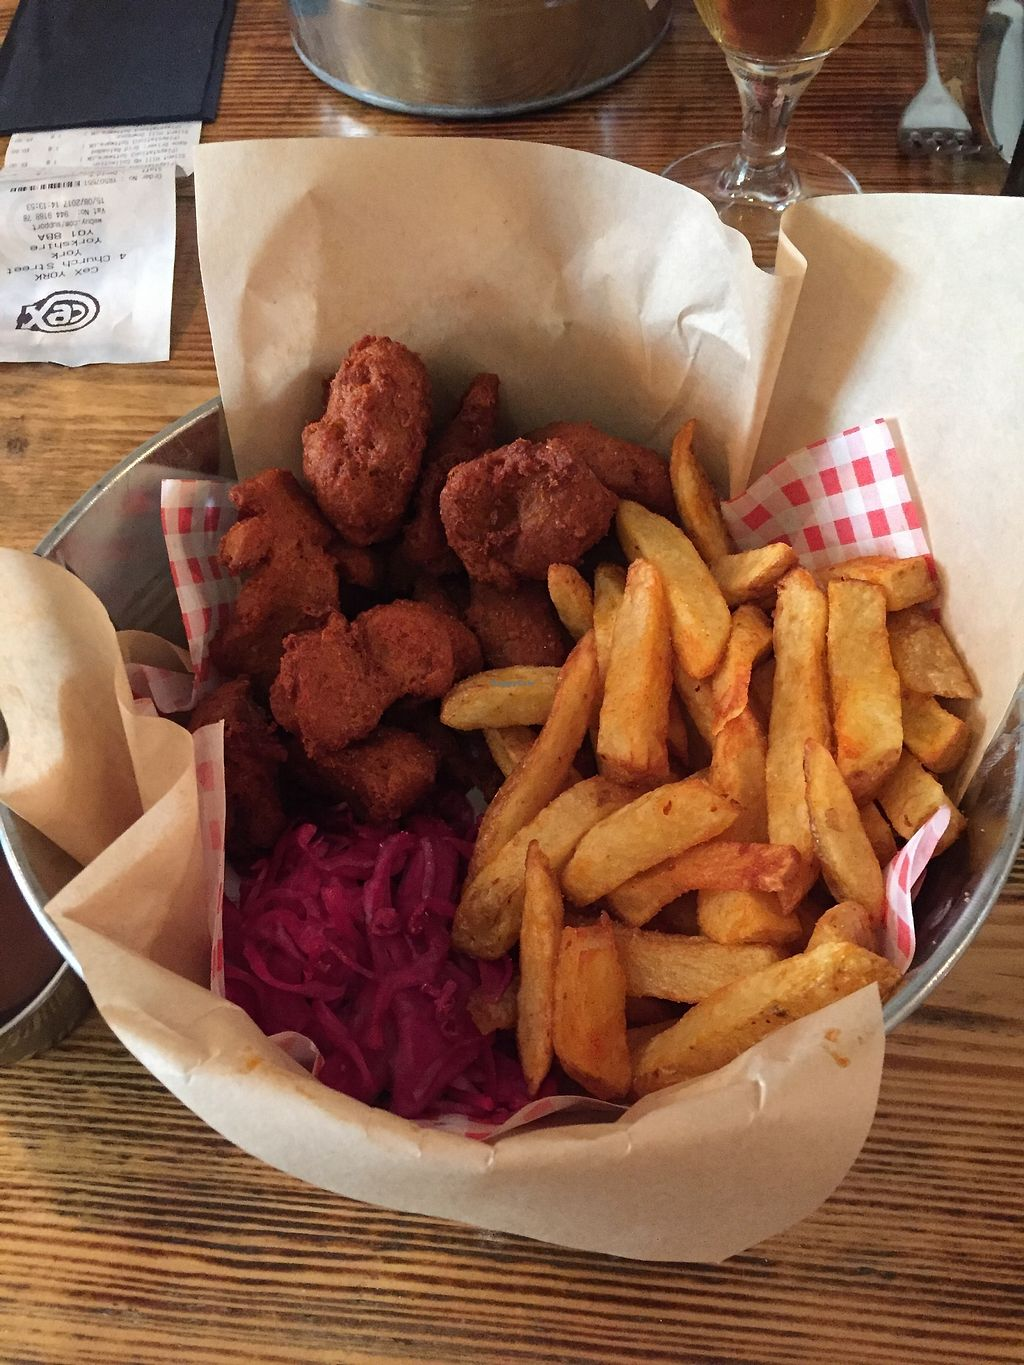 """Photo of Source  by <a href=""""/members/profile/Jennywheel"""">Jennywheel</a> <br/>Vegan fried chicken main <br/> August 21, 2017  - <a href='/contact/abuse/image/86526/295225'>Report</a>"""